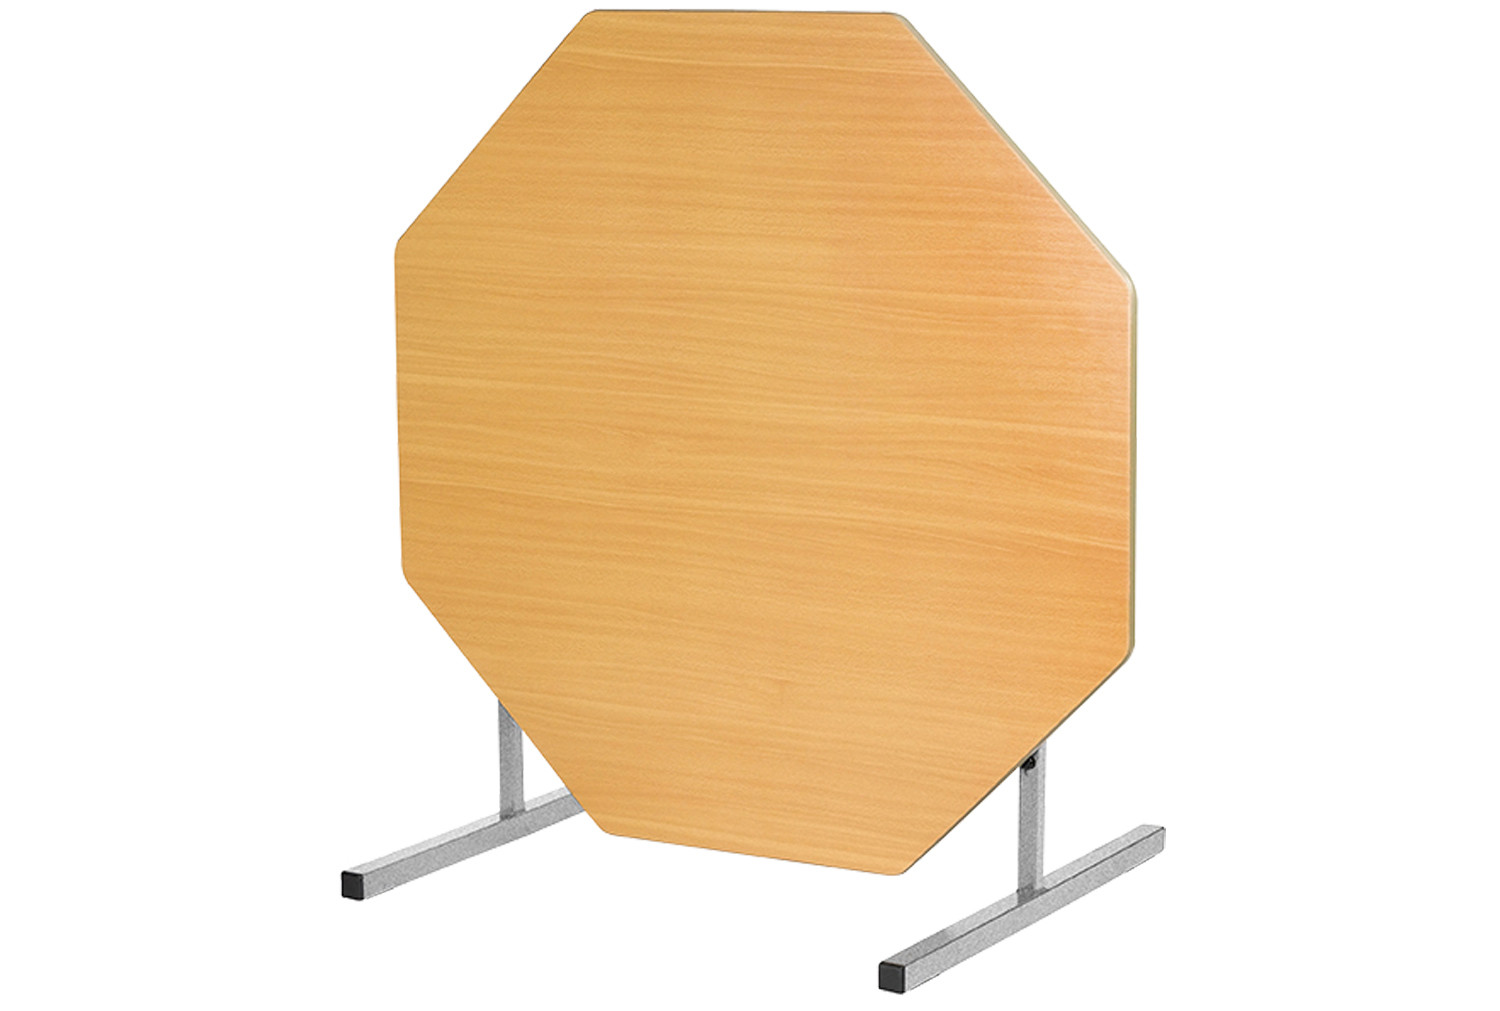 Octagonal tilt top tables